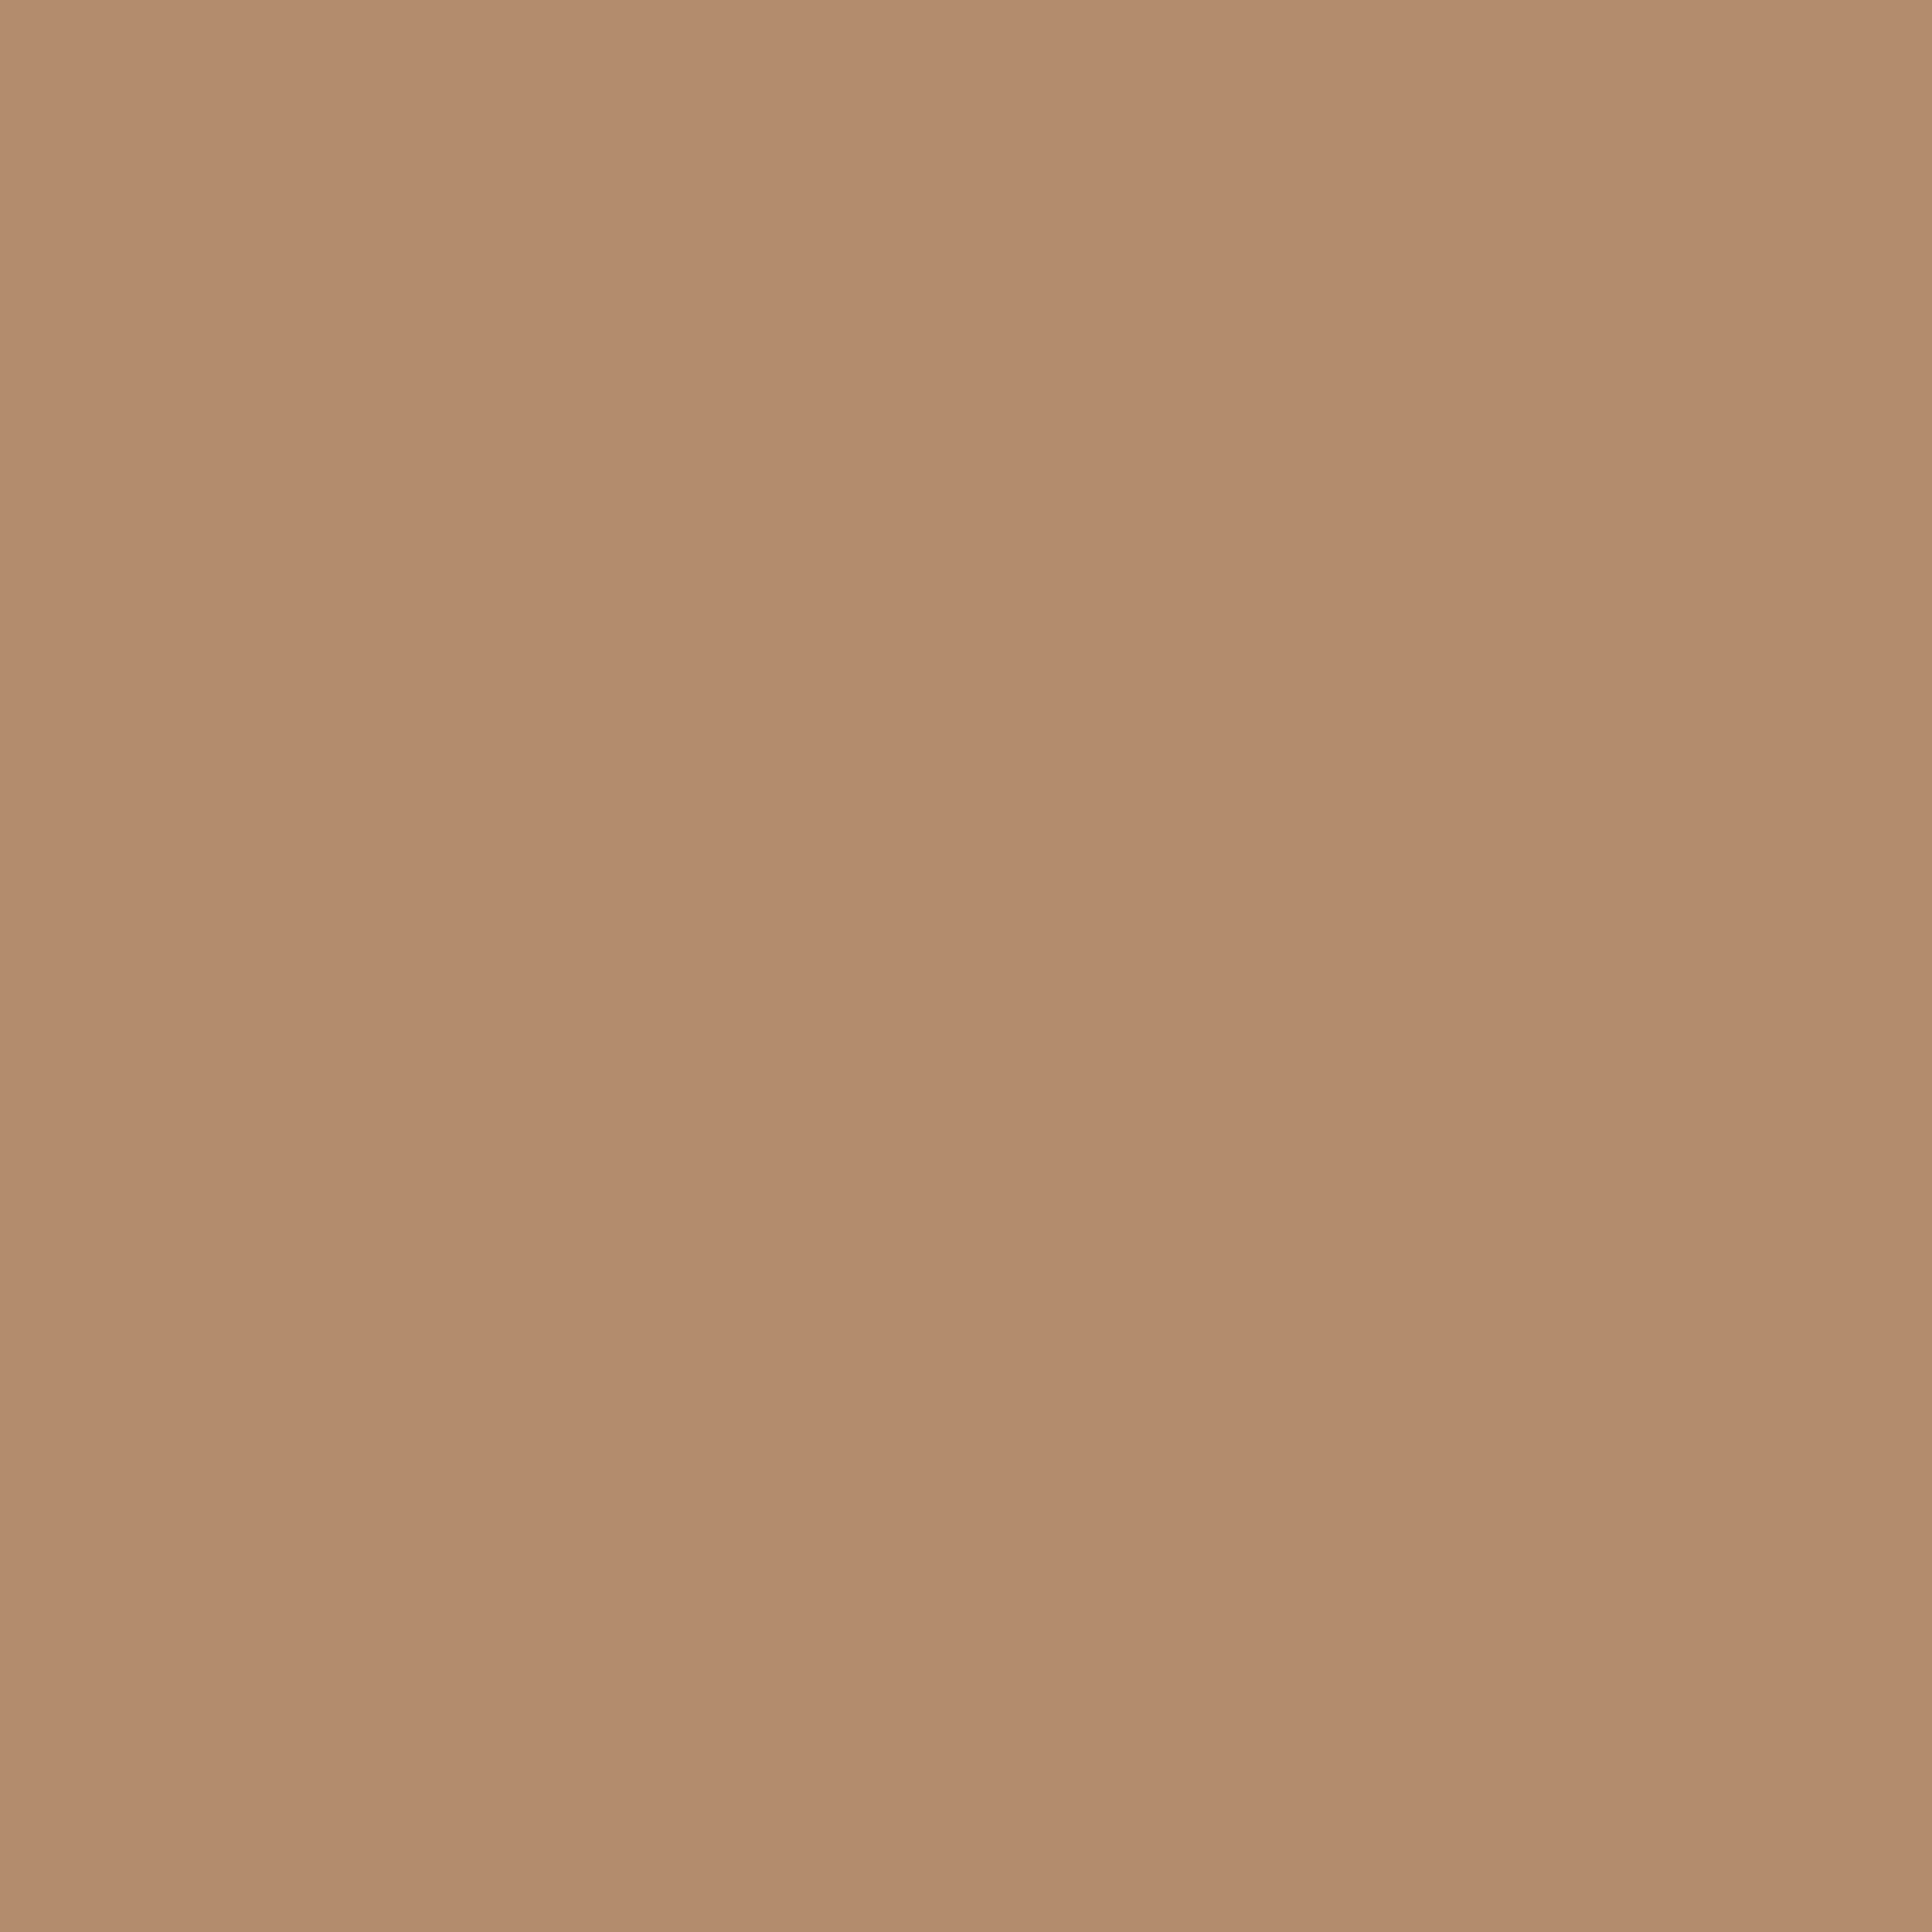 3600x3600 Light Taupe Solid Color Background